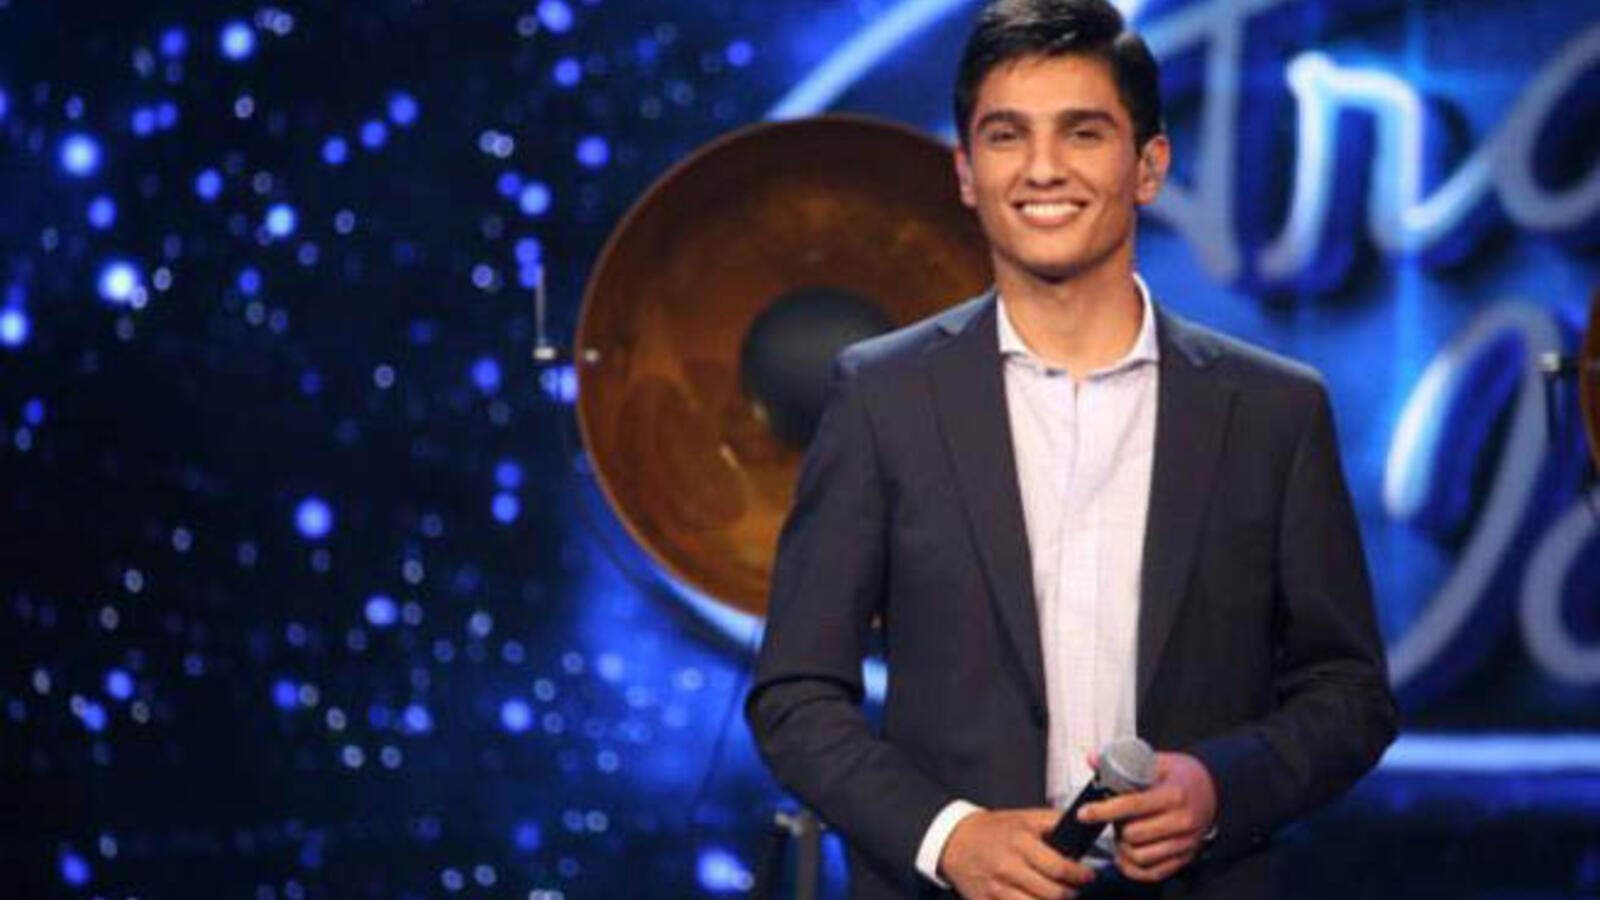 Mohammad Assaf's shining moment